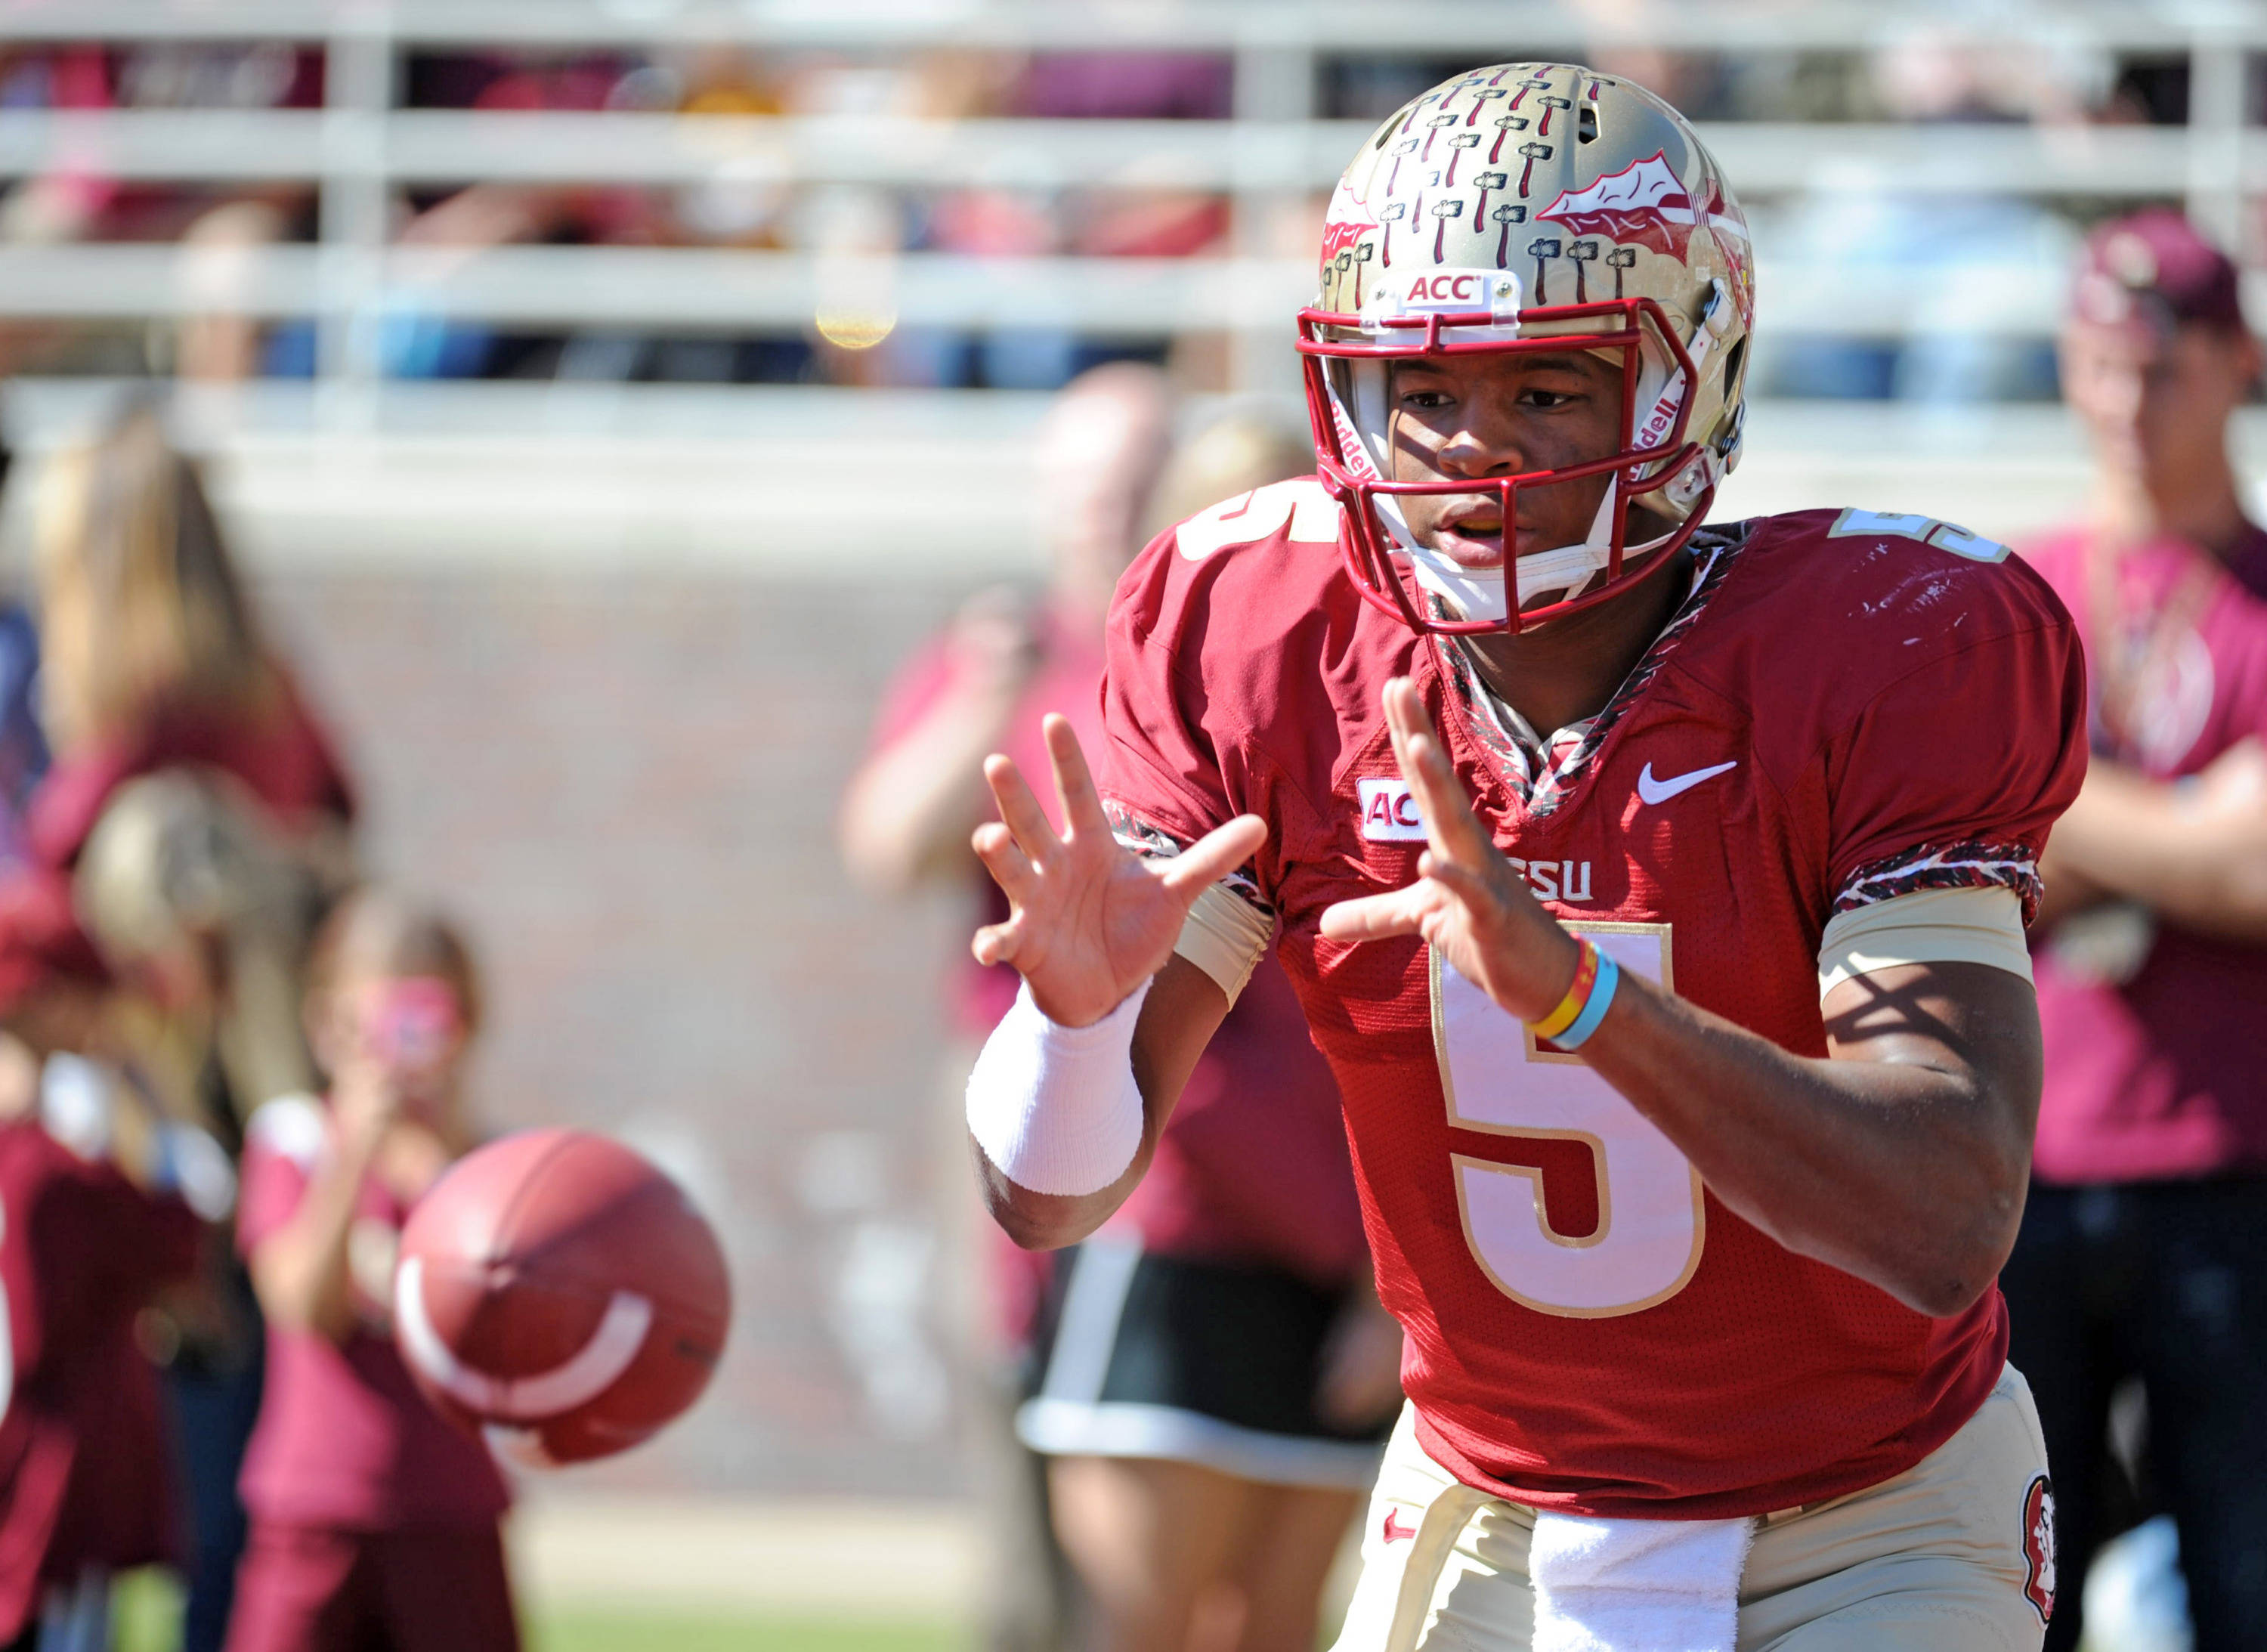 Jameis Winston (5) warms up before the start of the game. Mandatory Credit: Melina Vastola-USA TODAY Sports